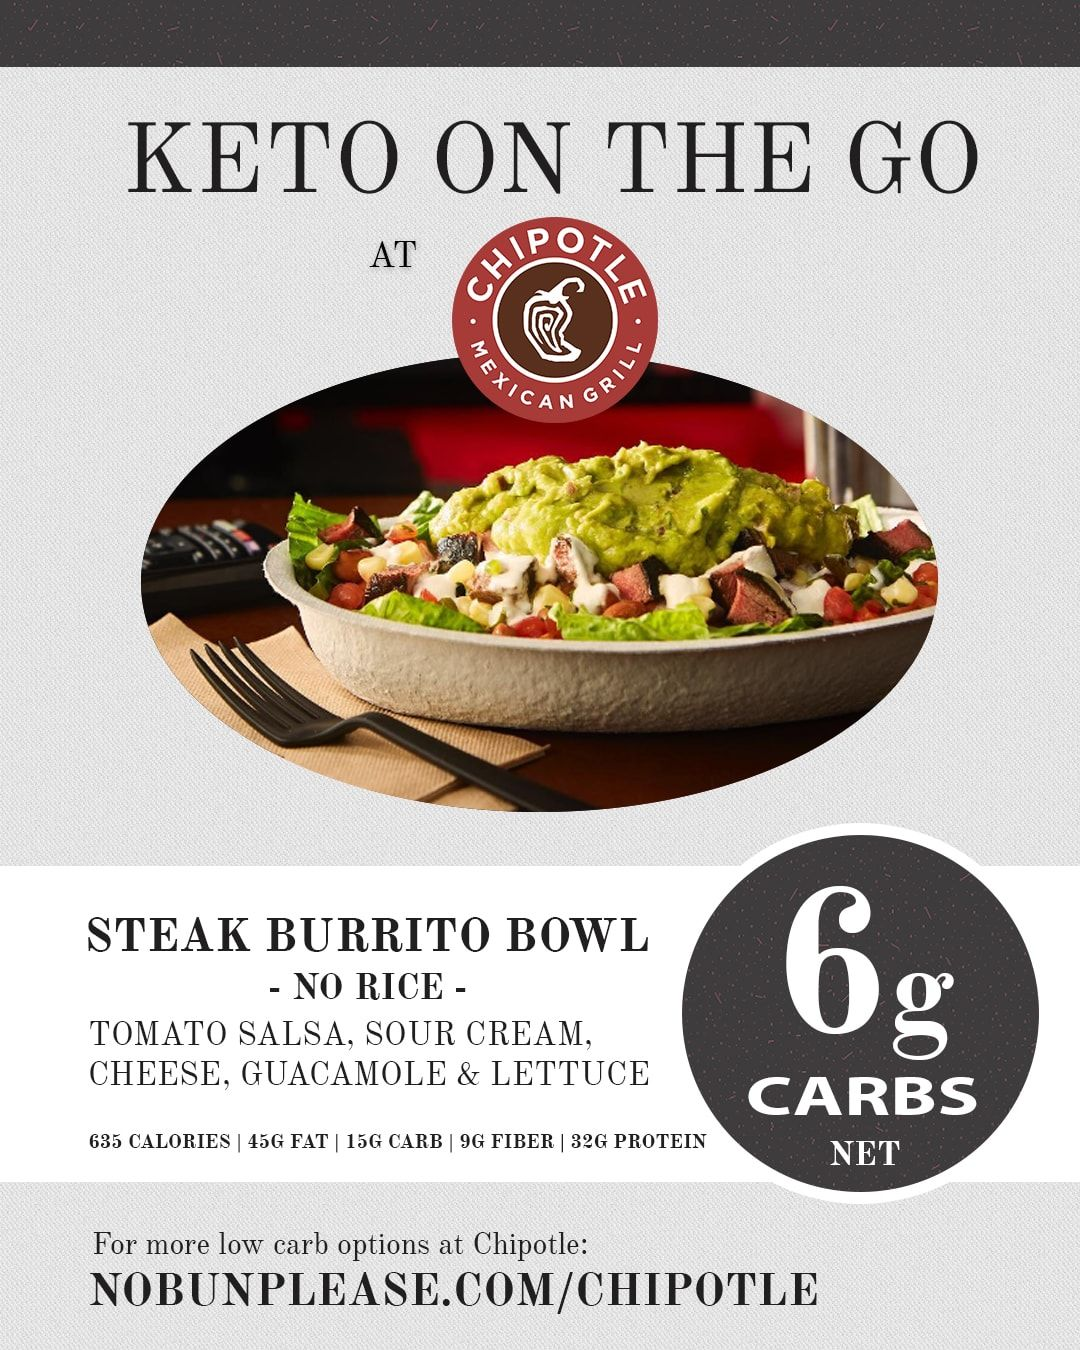 chipotle ketogenic diet what can you ordee